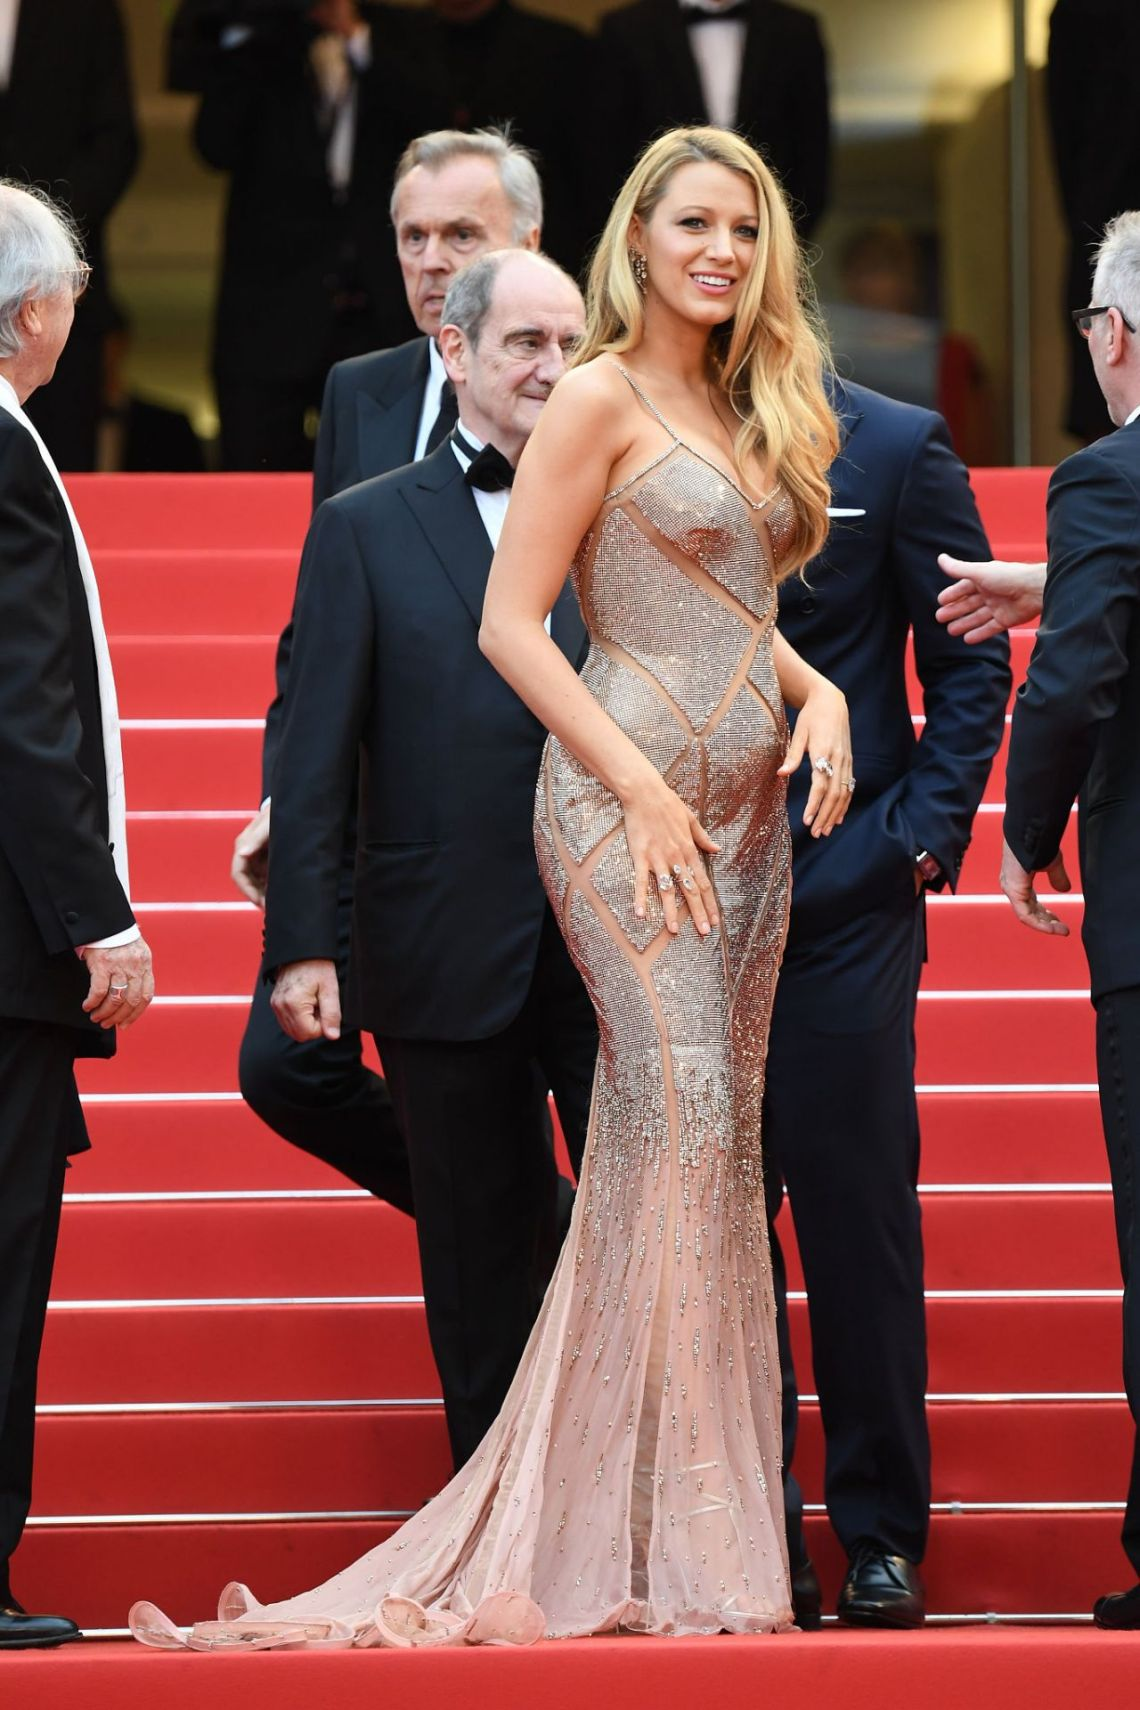 blake-lively-opening-ceremony-and-the-café-society-premiere-2016-cannes-film-festival-23